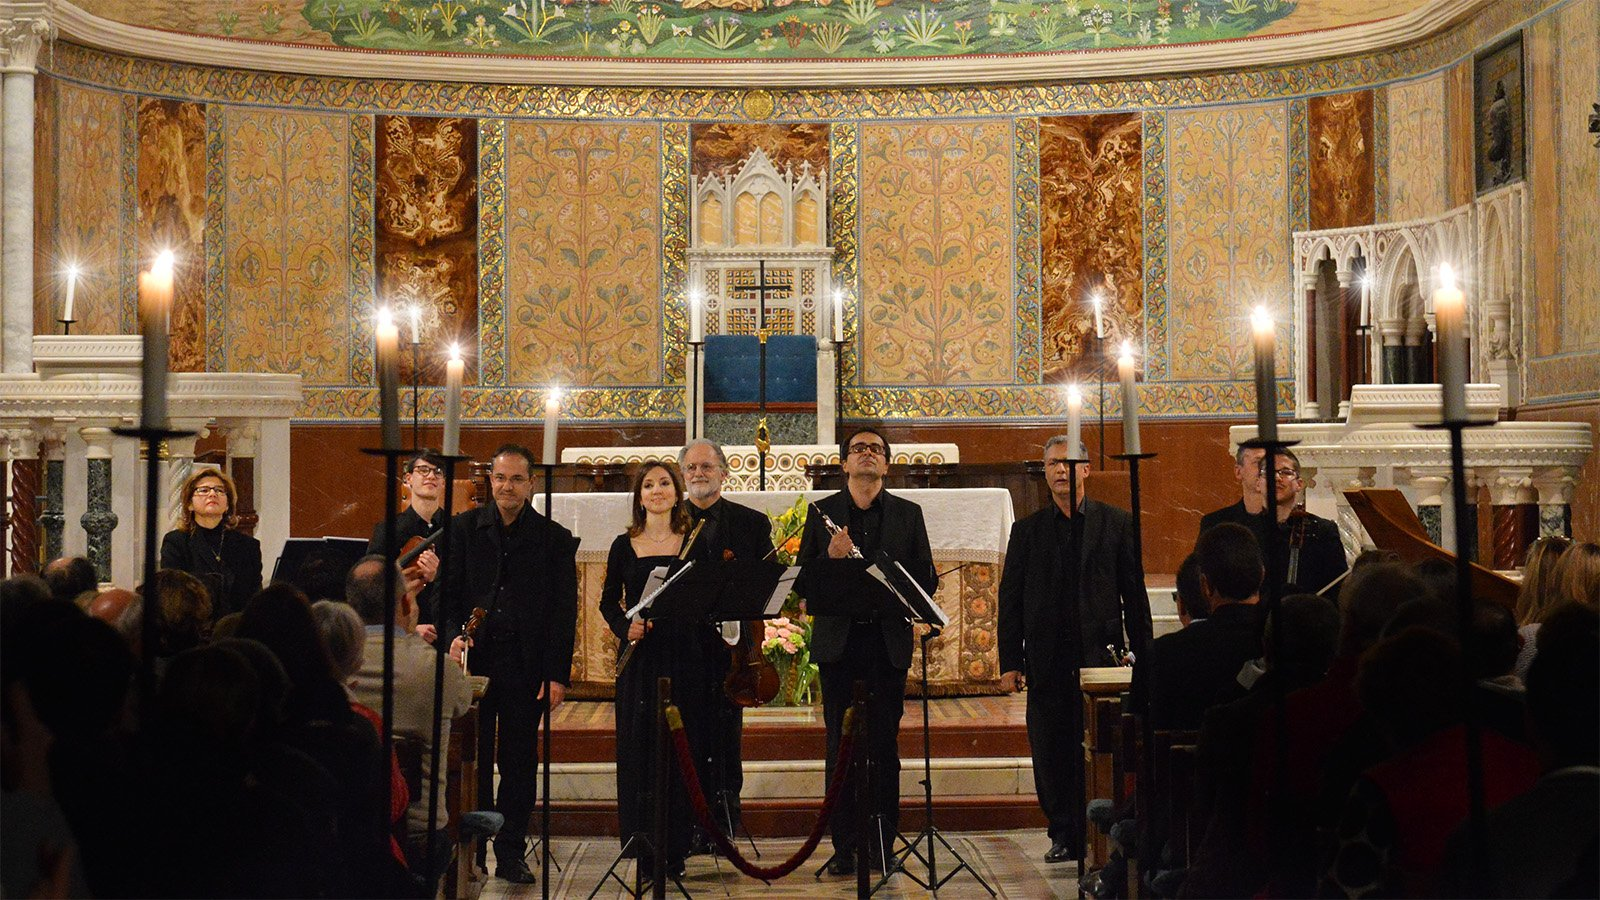 Chamber Music Saint Paul Within the Walls